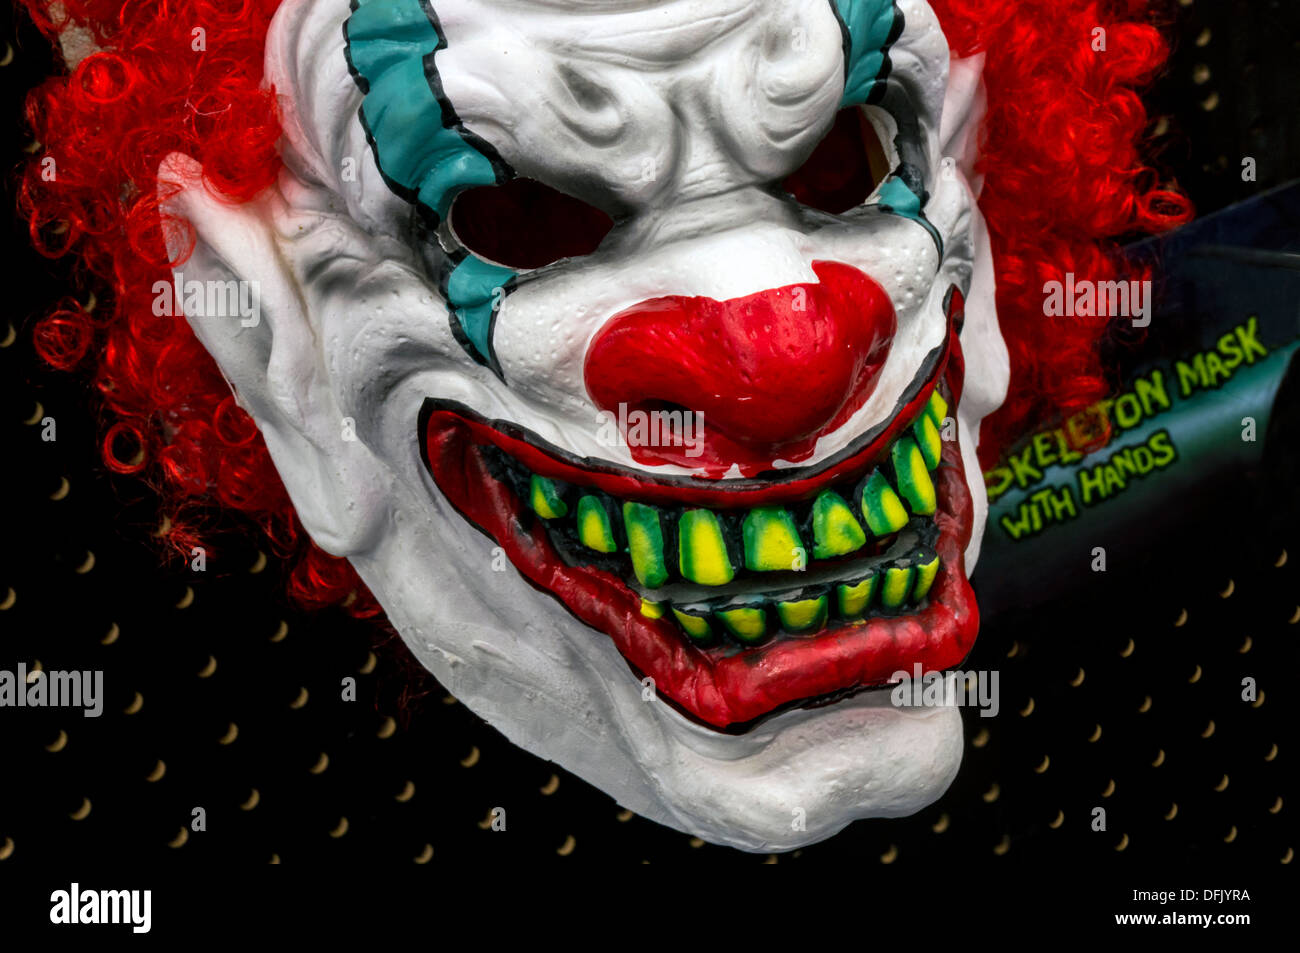 Scary, frightening Halloween clown face mask with red hair and ...